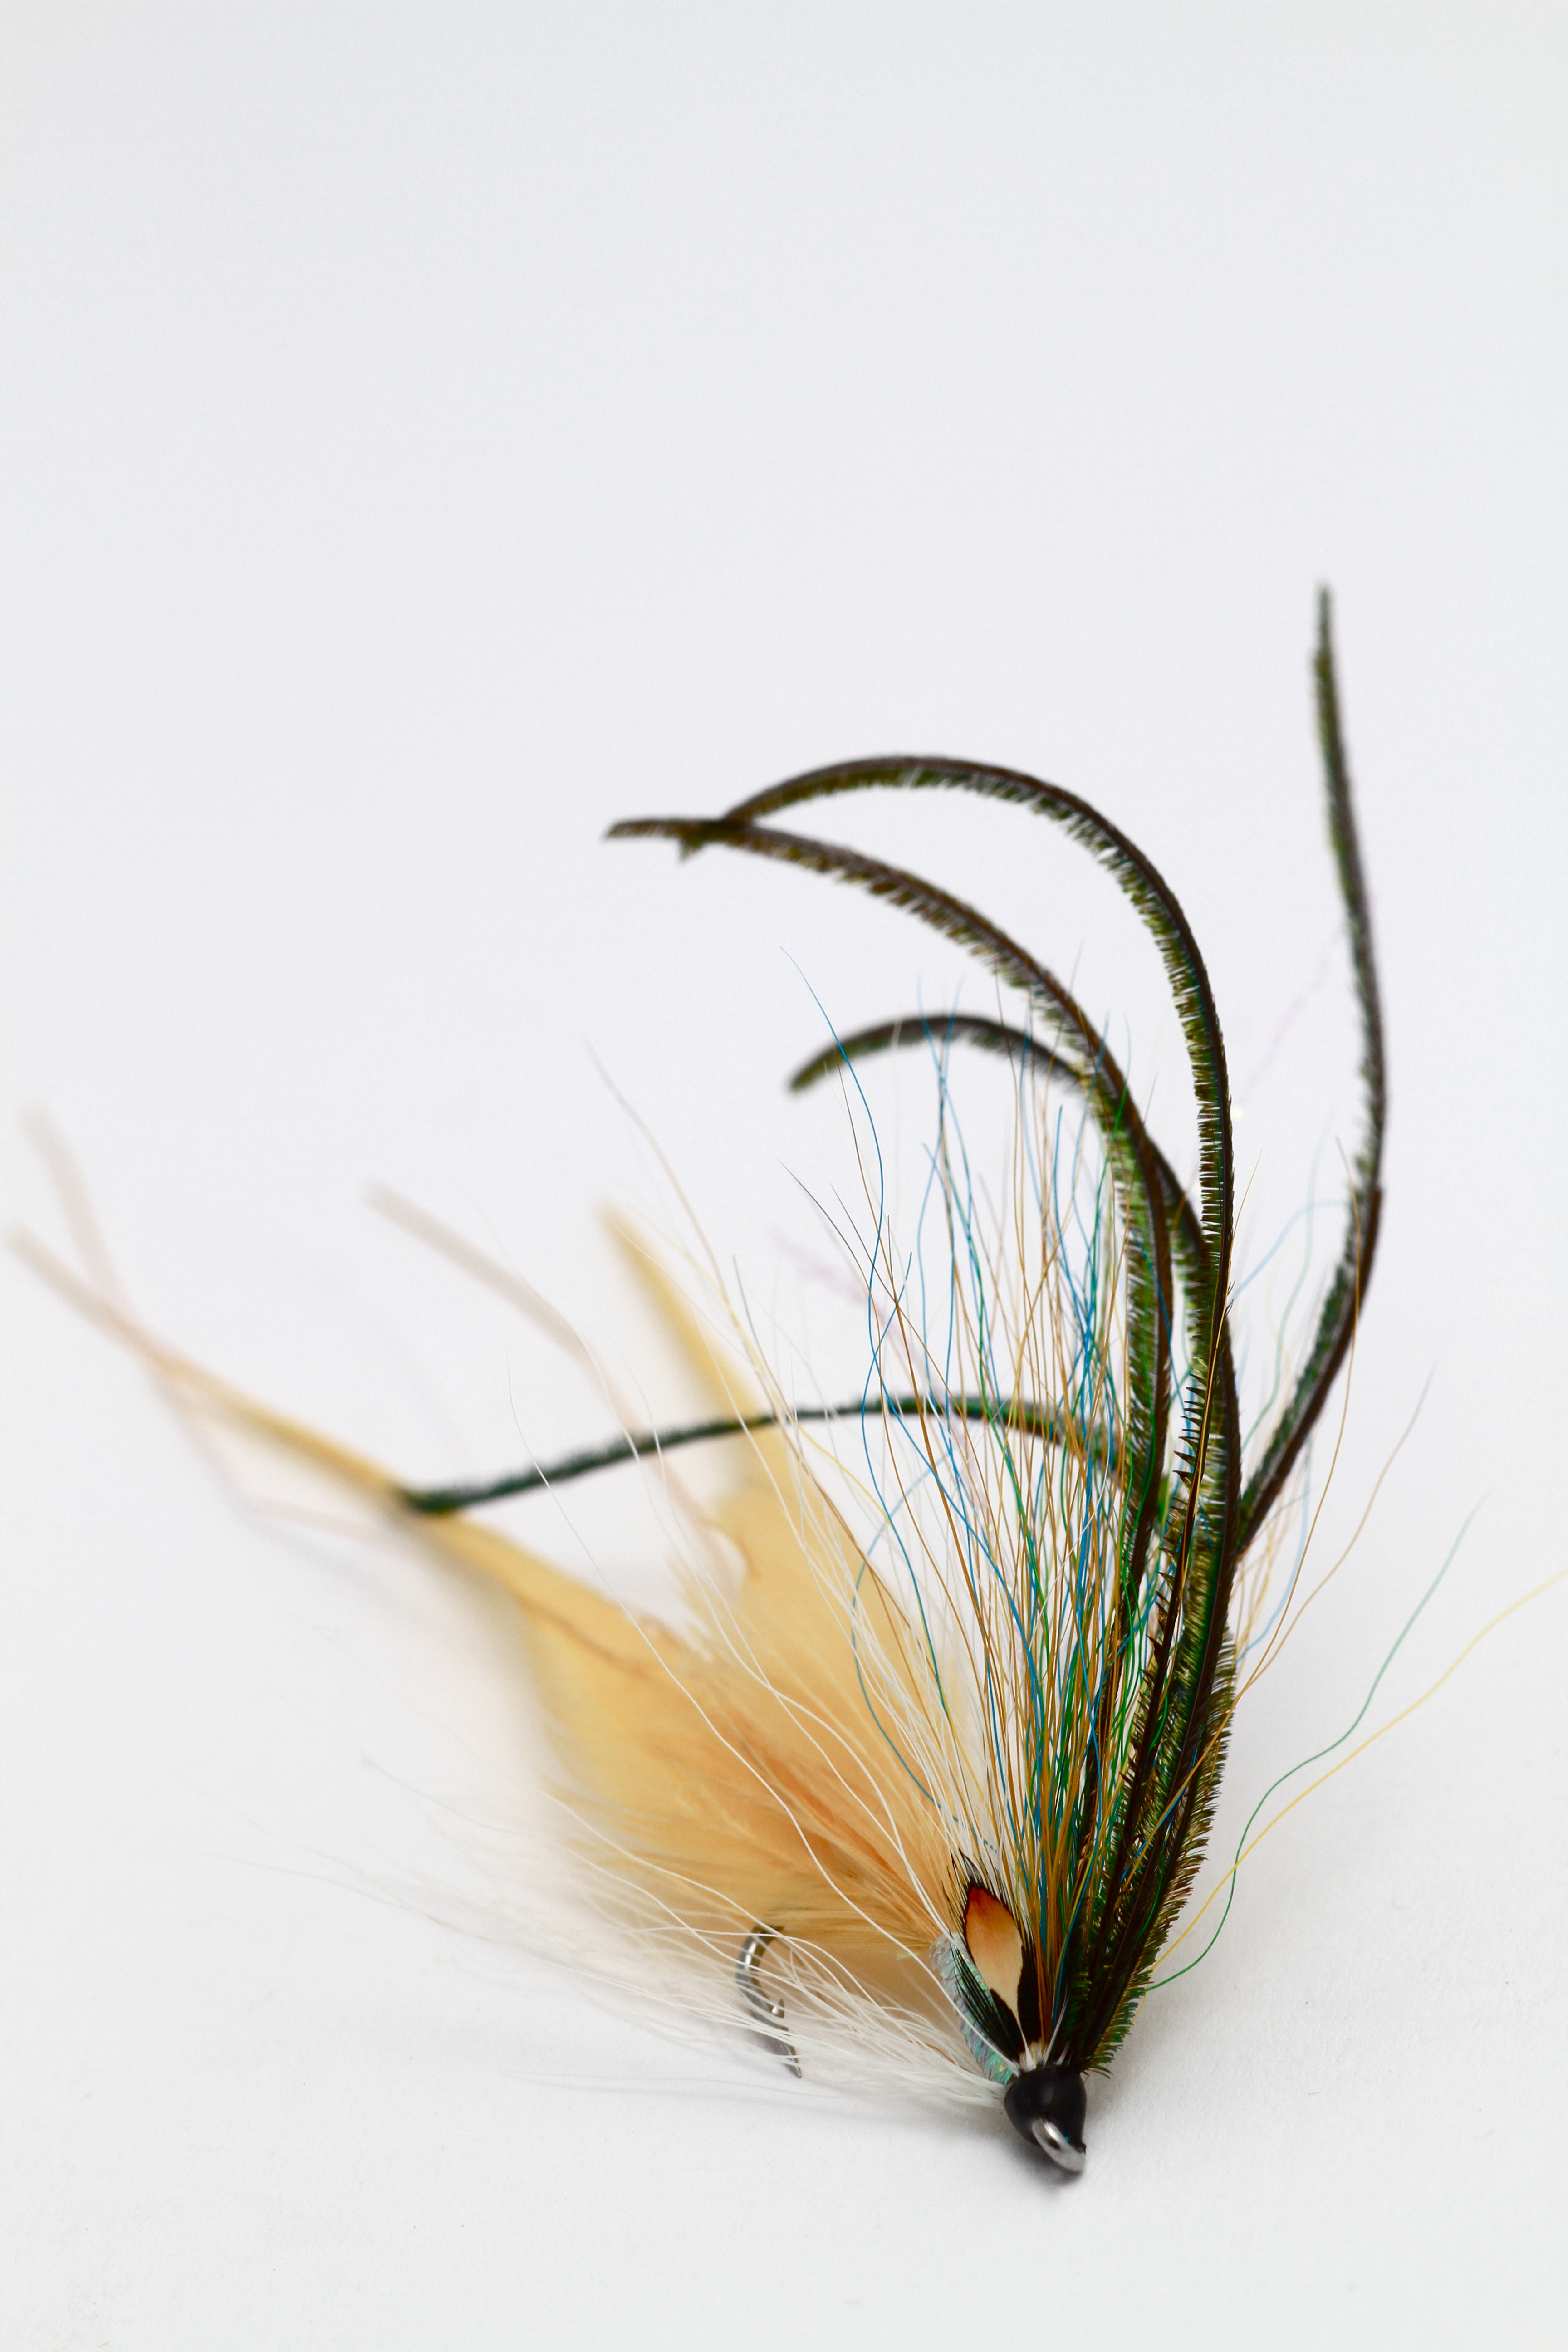 This sea trout flat wing variant is a sure winner and an attractor of larger fish.